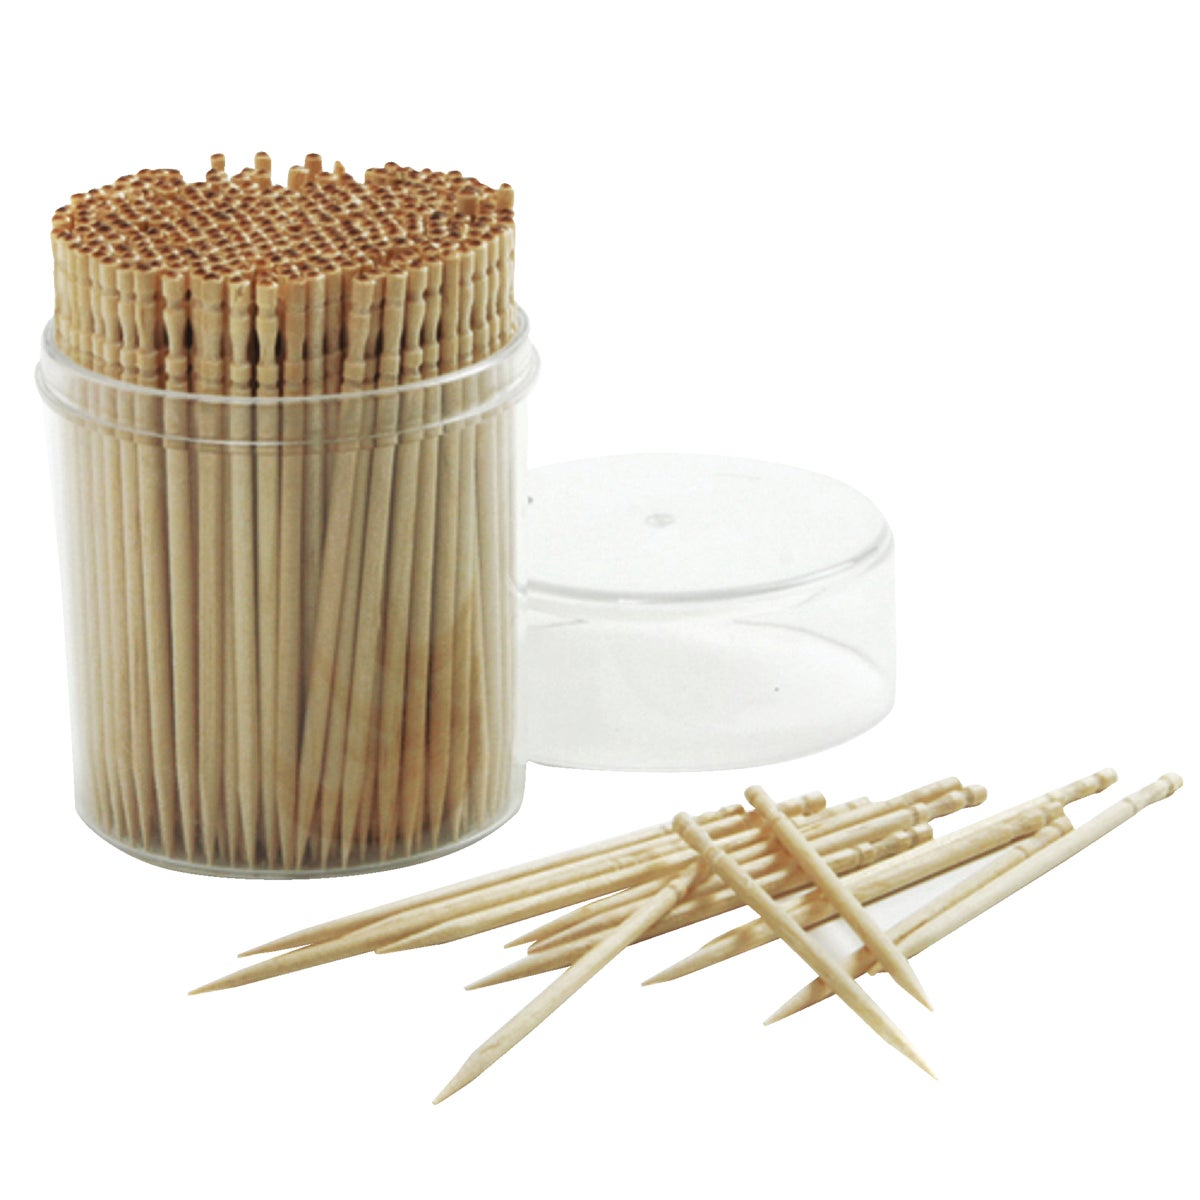 360PC WOOD TOOTHPICKS